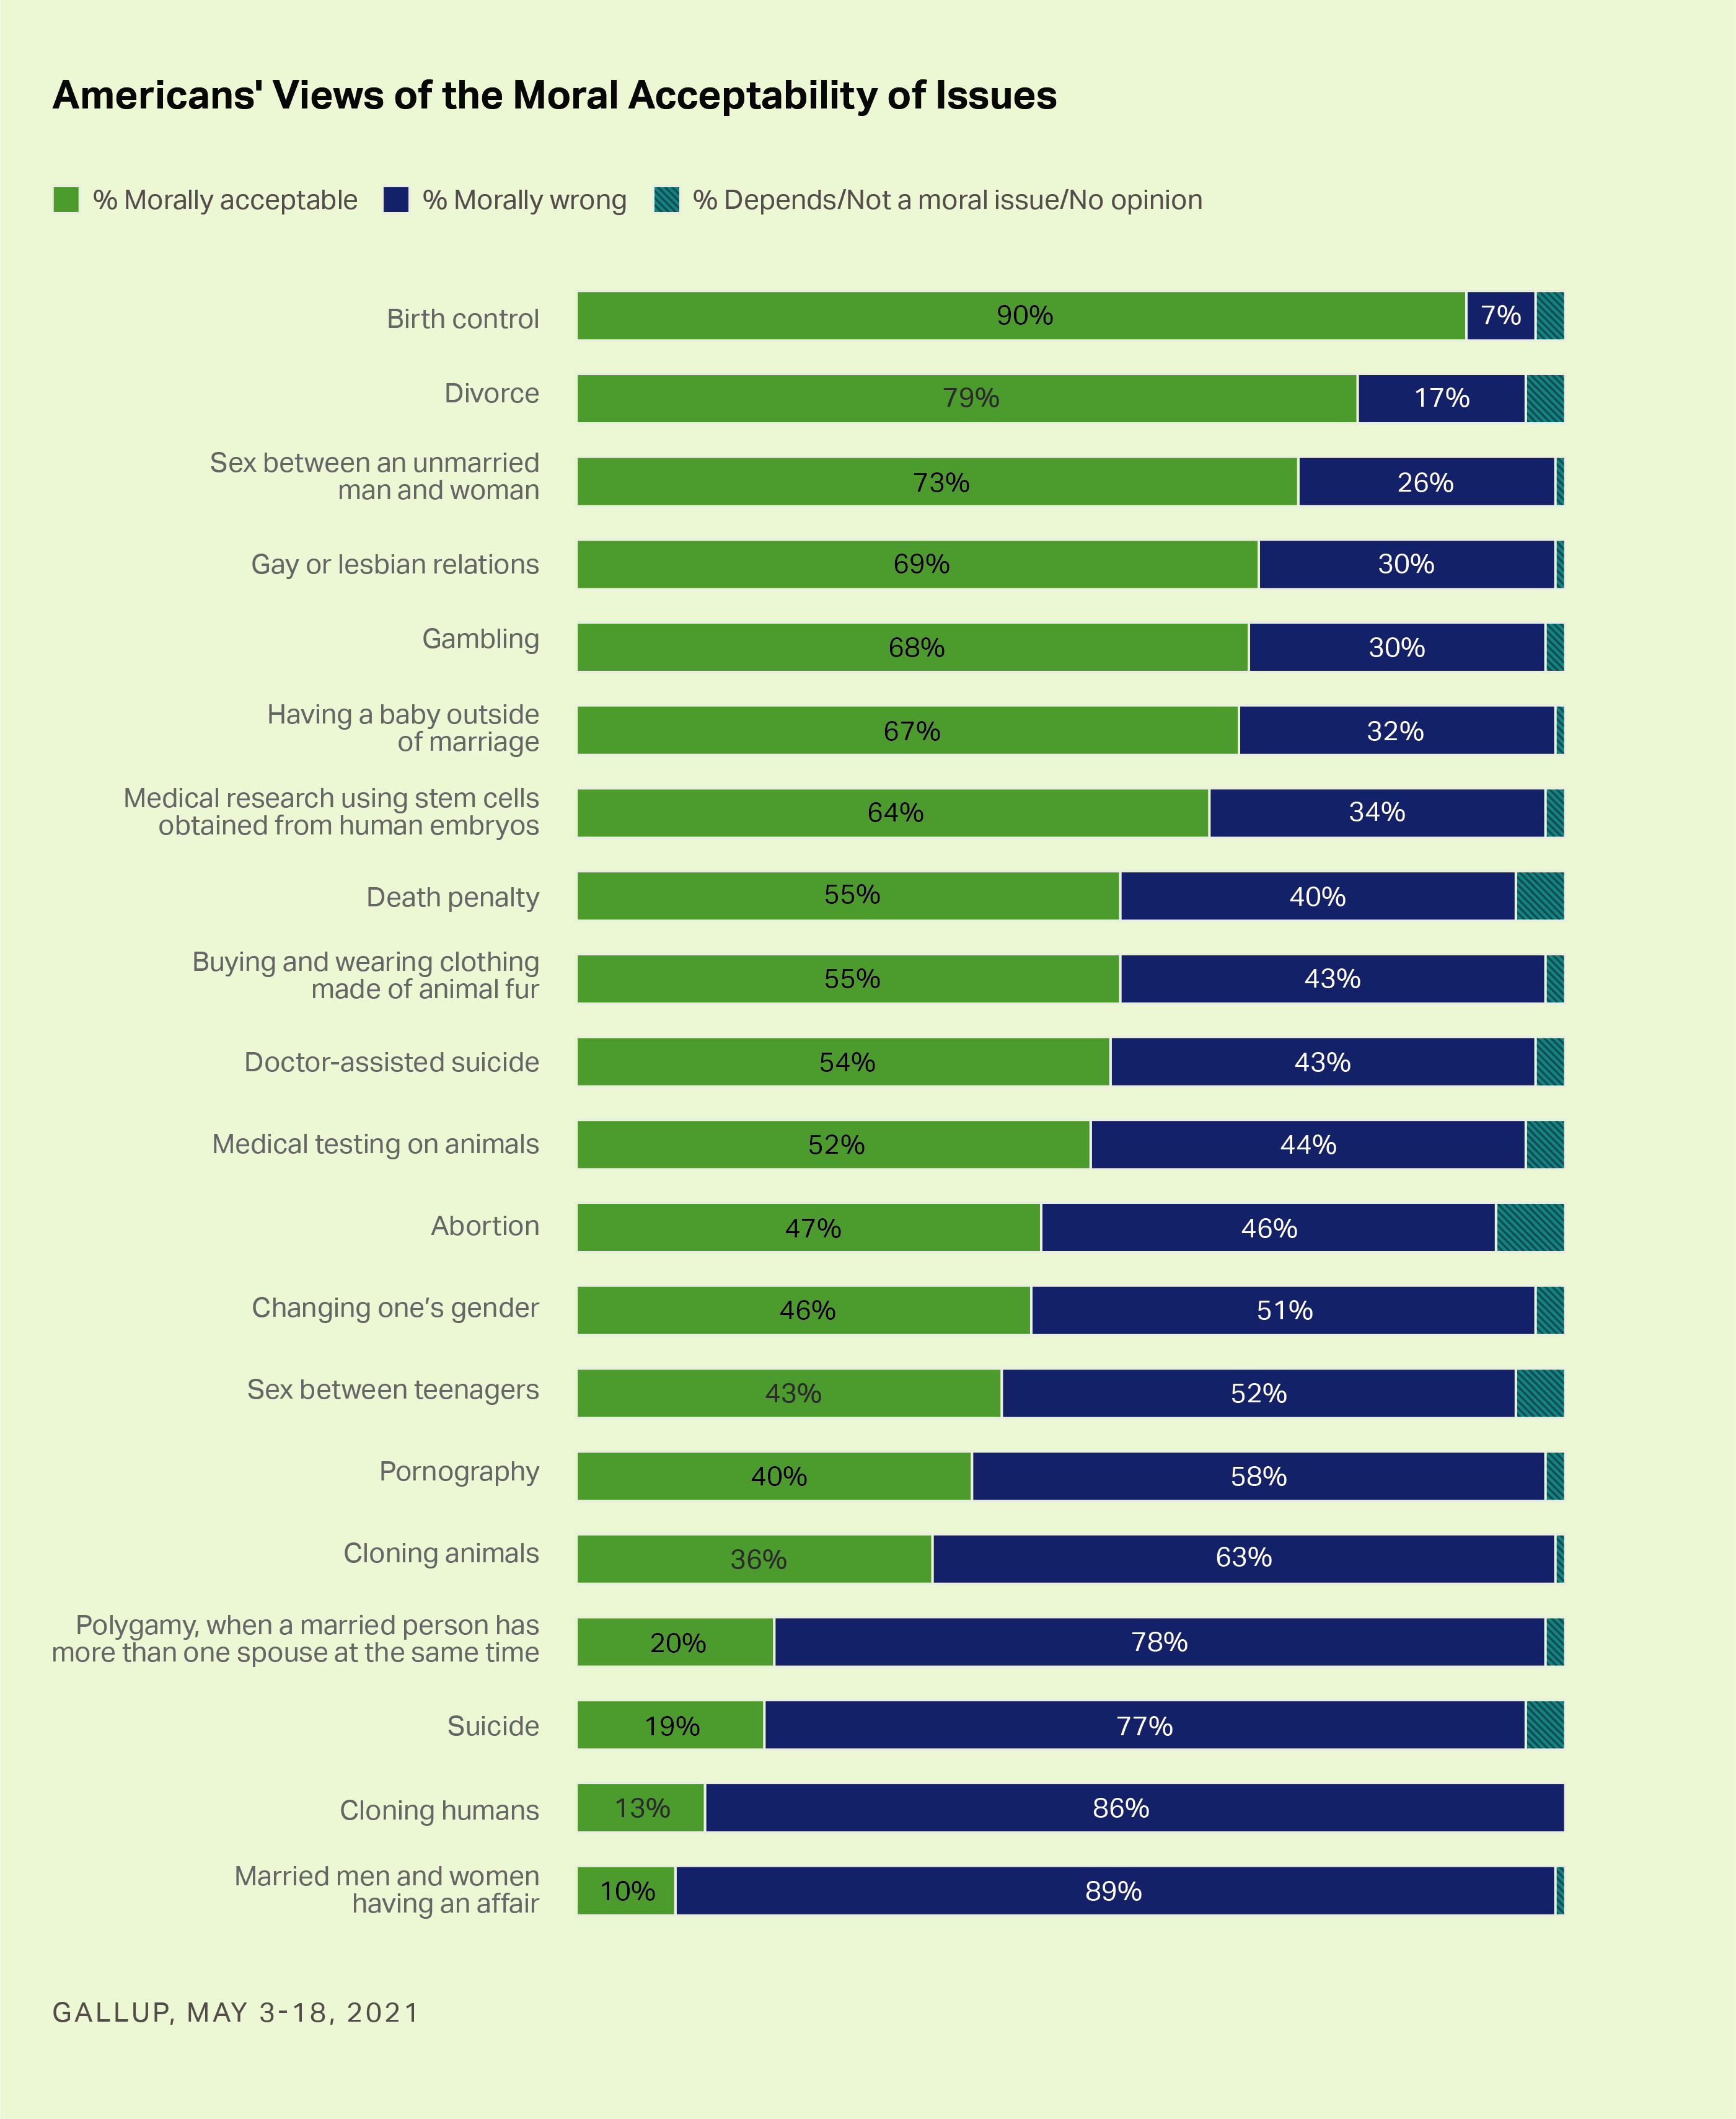 America's Views of Moral Acceptability of Issues